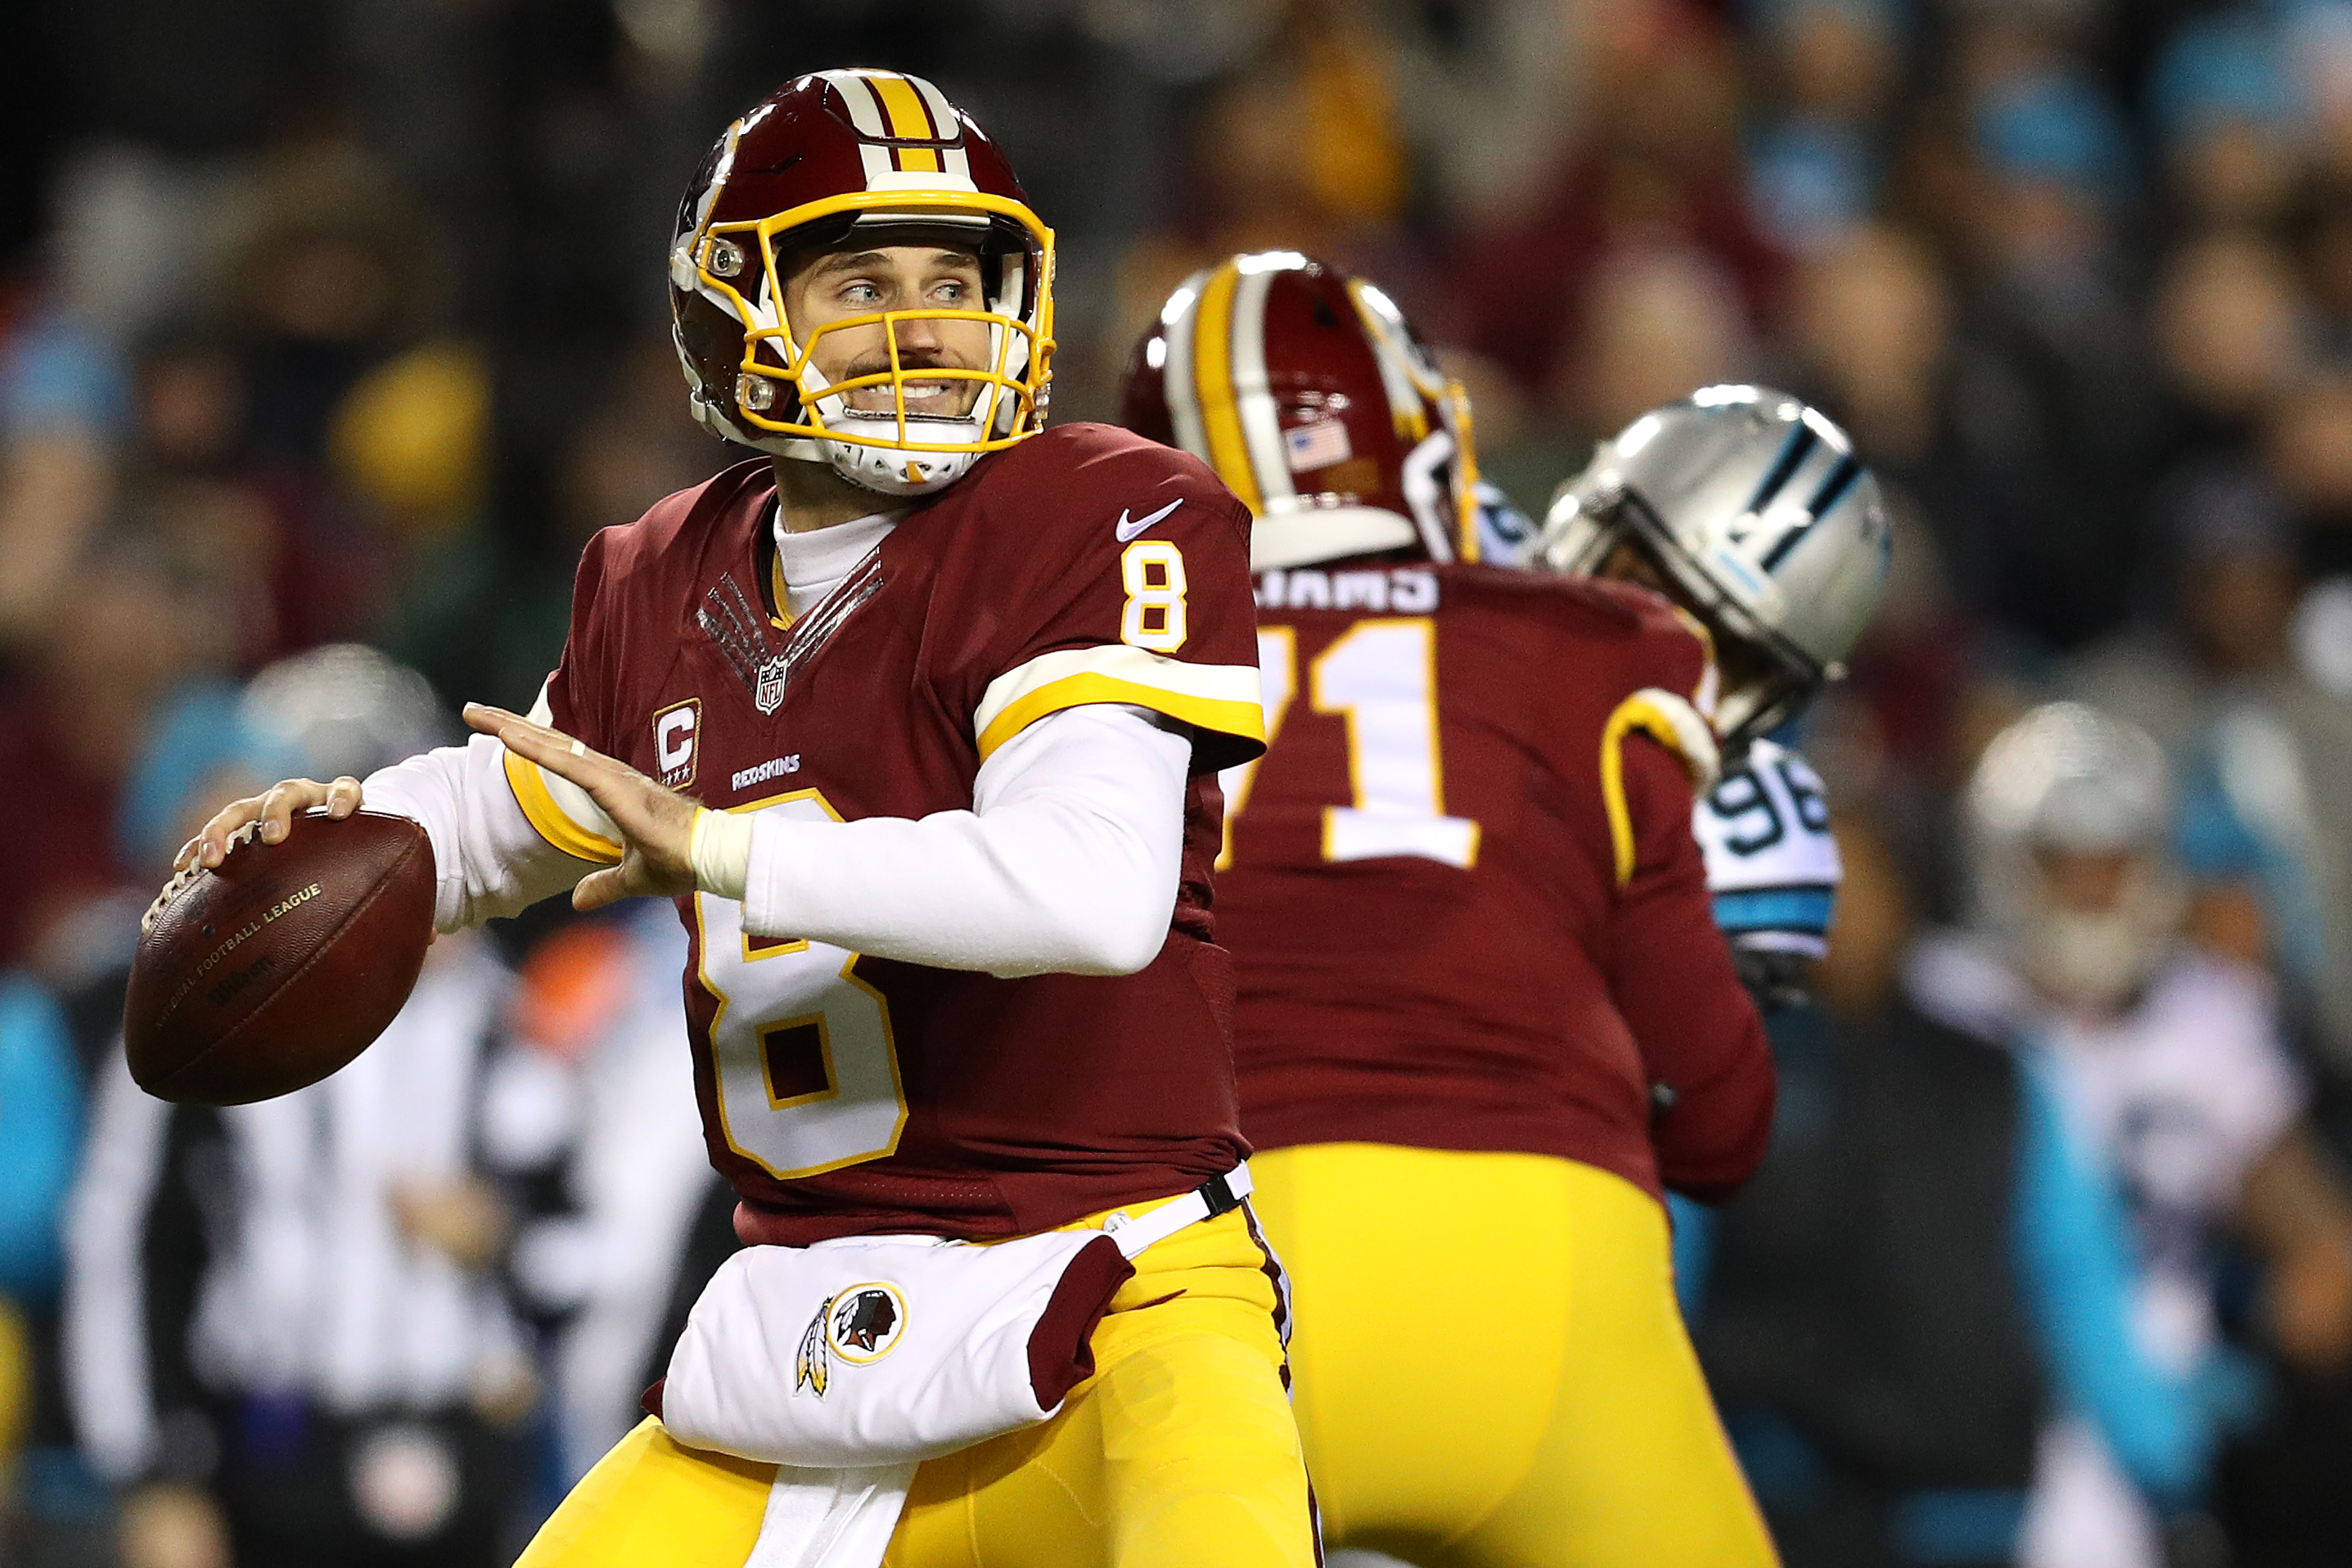 Redskins QB Kirk Cousins likely to play under franchise tag